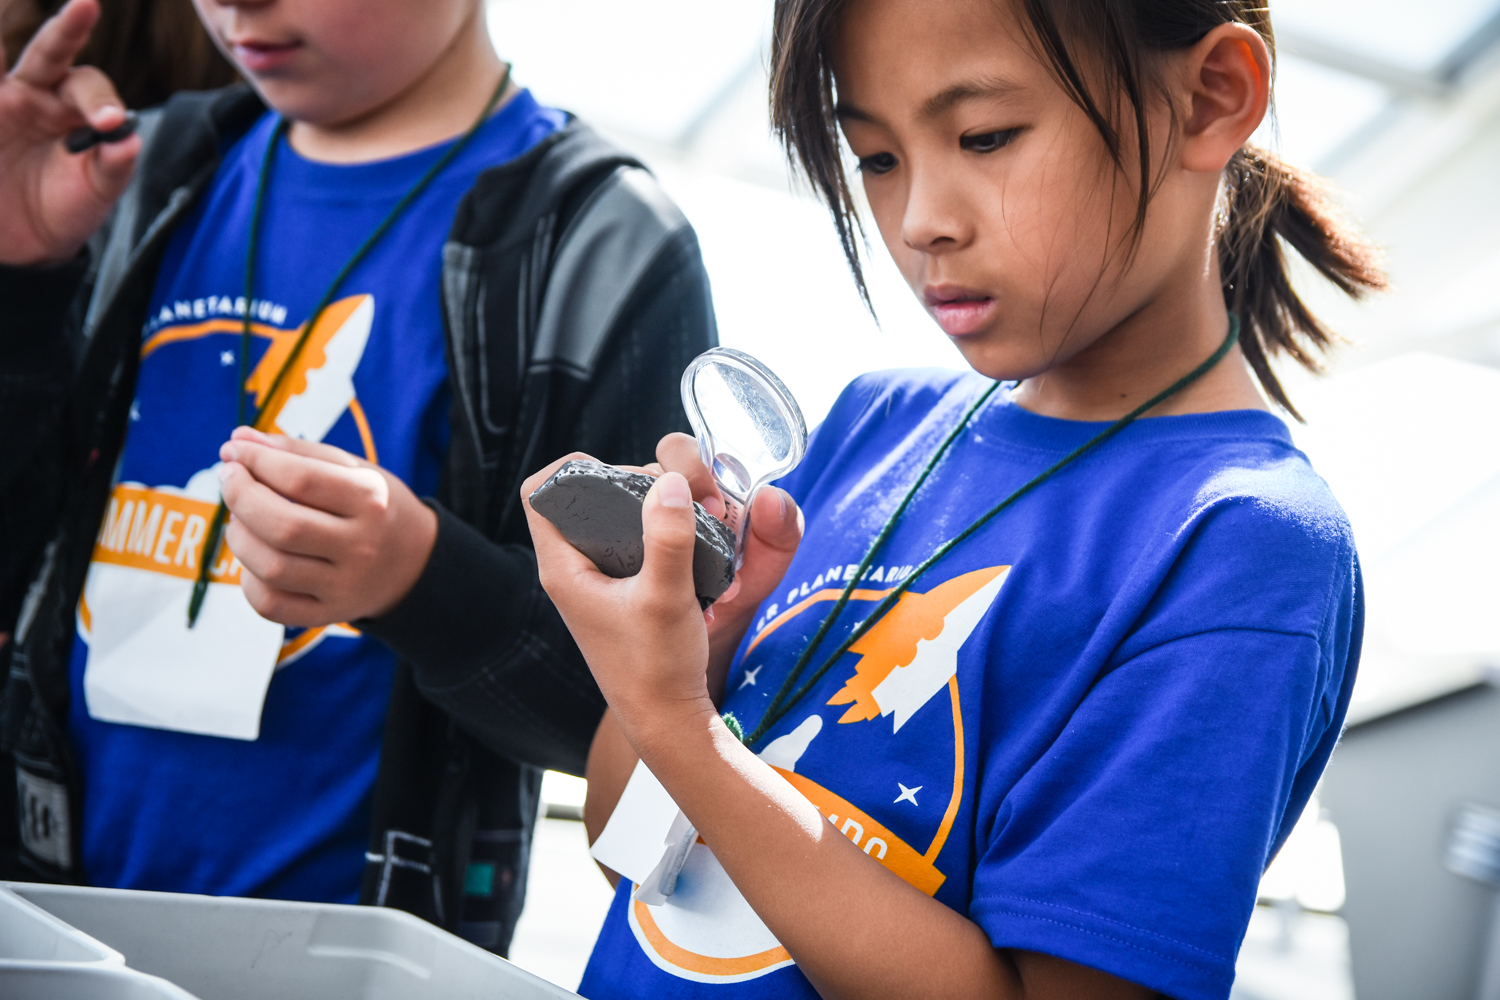 Adler Summer Camp Participant Looking At Space Rock